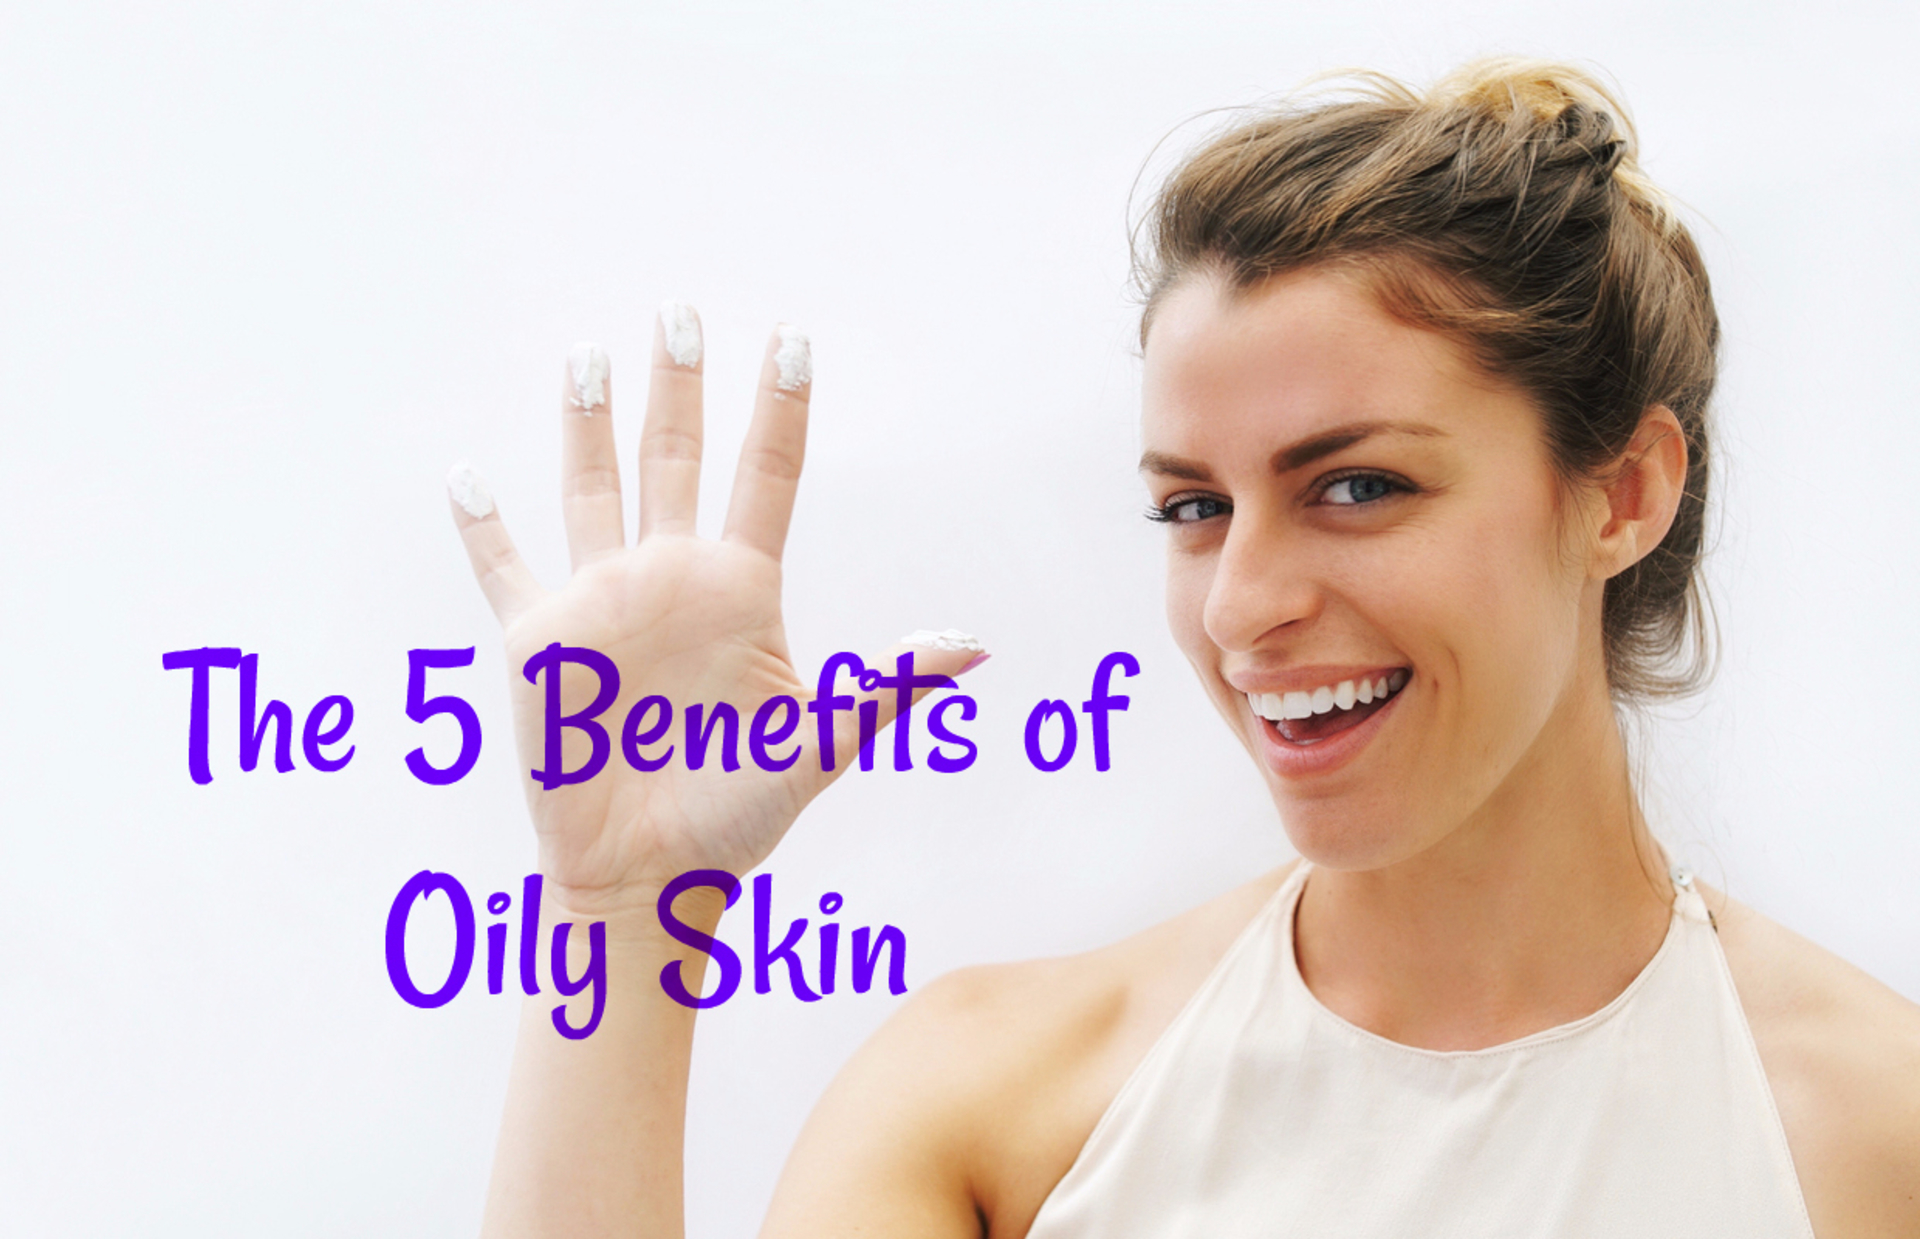 The 5 Benefits of Oily Skin image